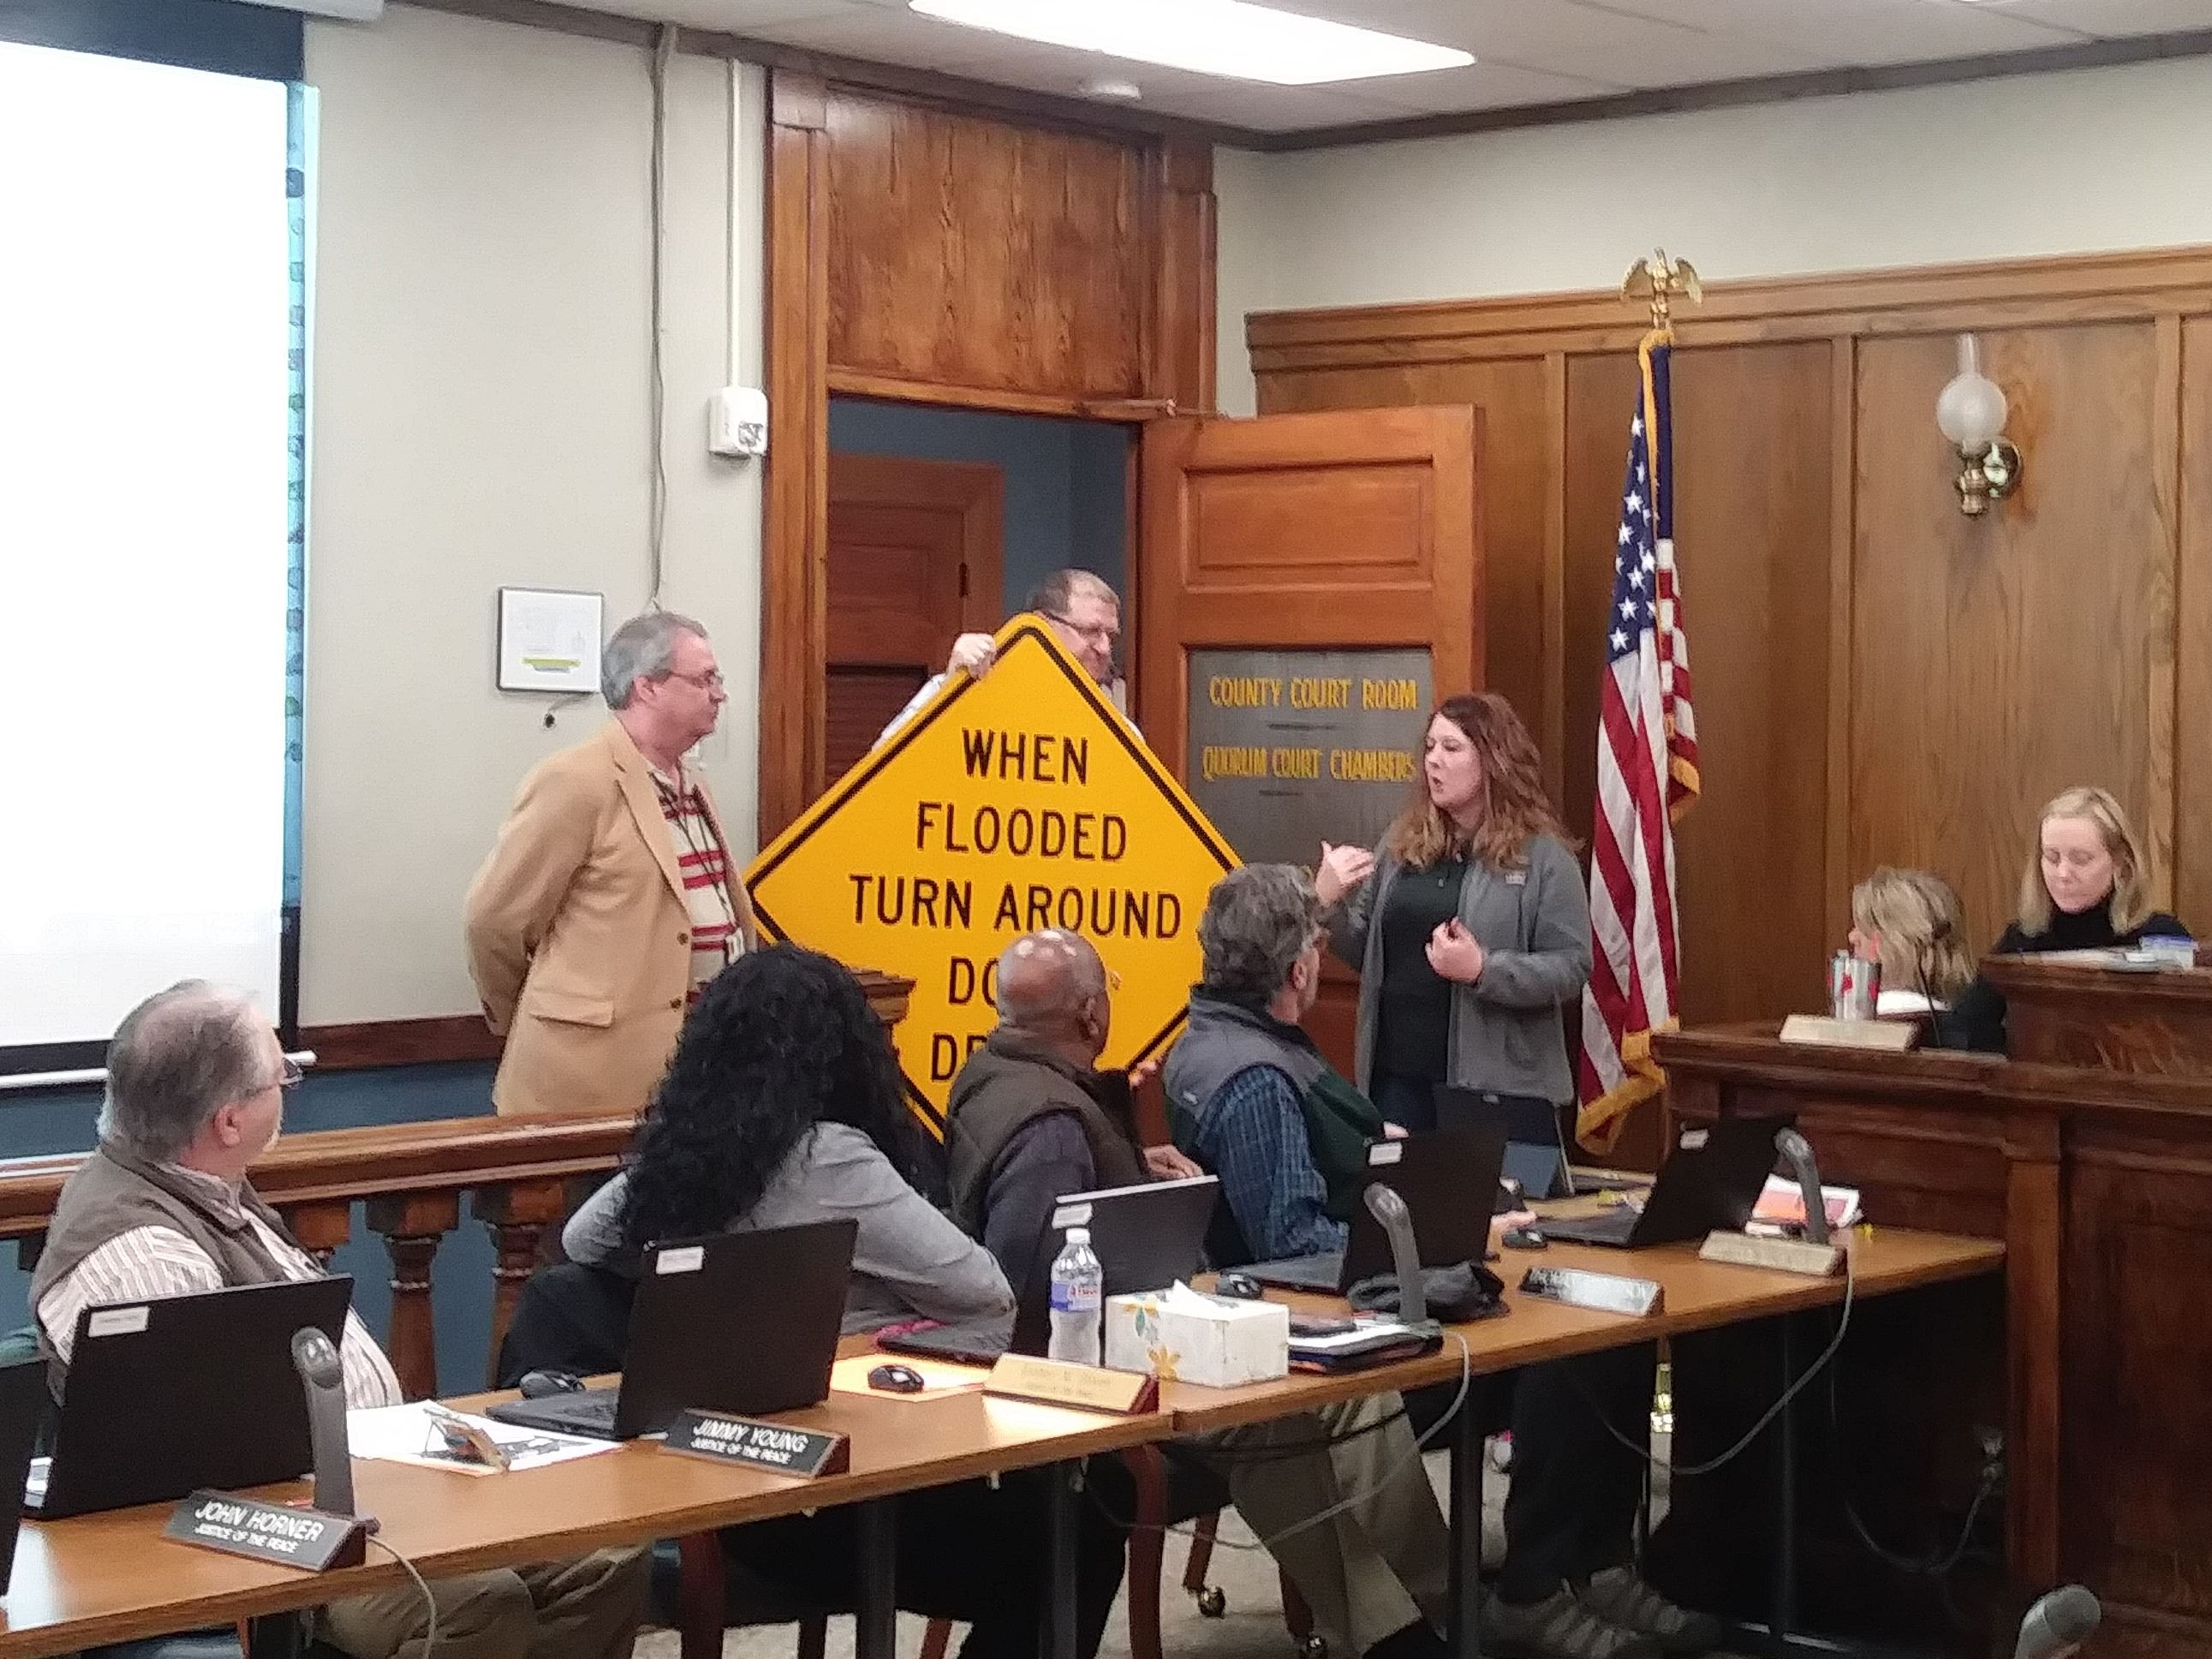 Tabita Clarke presents TADD Signs to Garland County.